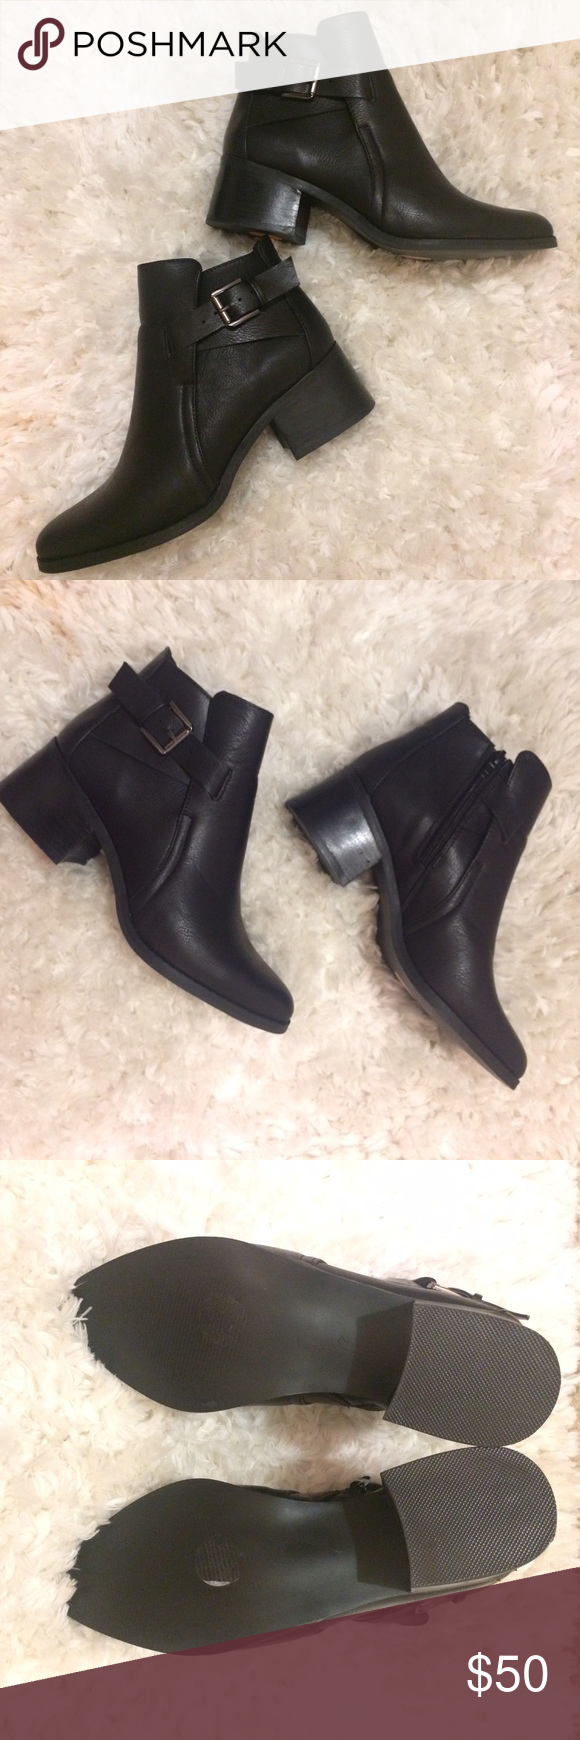 MIA Black Booties NWT MIA black ankle booties. Beautiful details with an exterior buckle, perfect pointed toe, stacked heel and zipper for easy on and off.  Retails for $130 MIA Shoes Ankle Boots & Booties